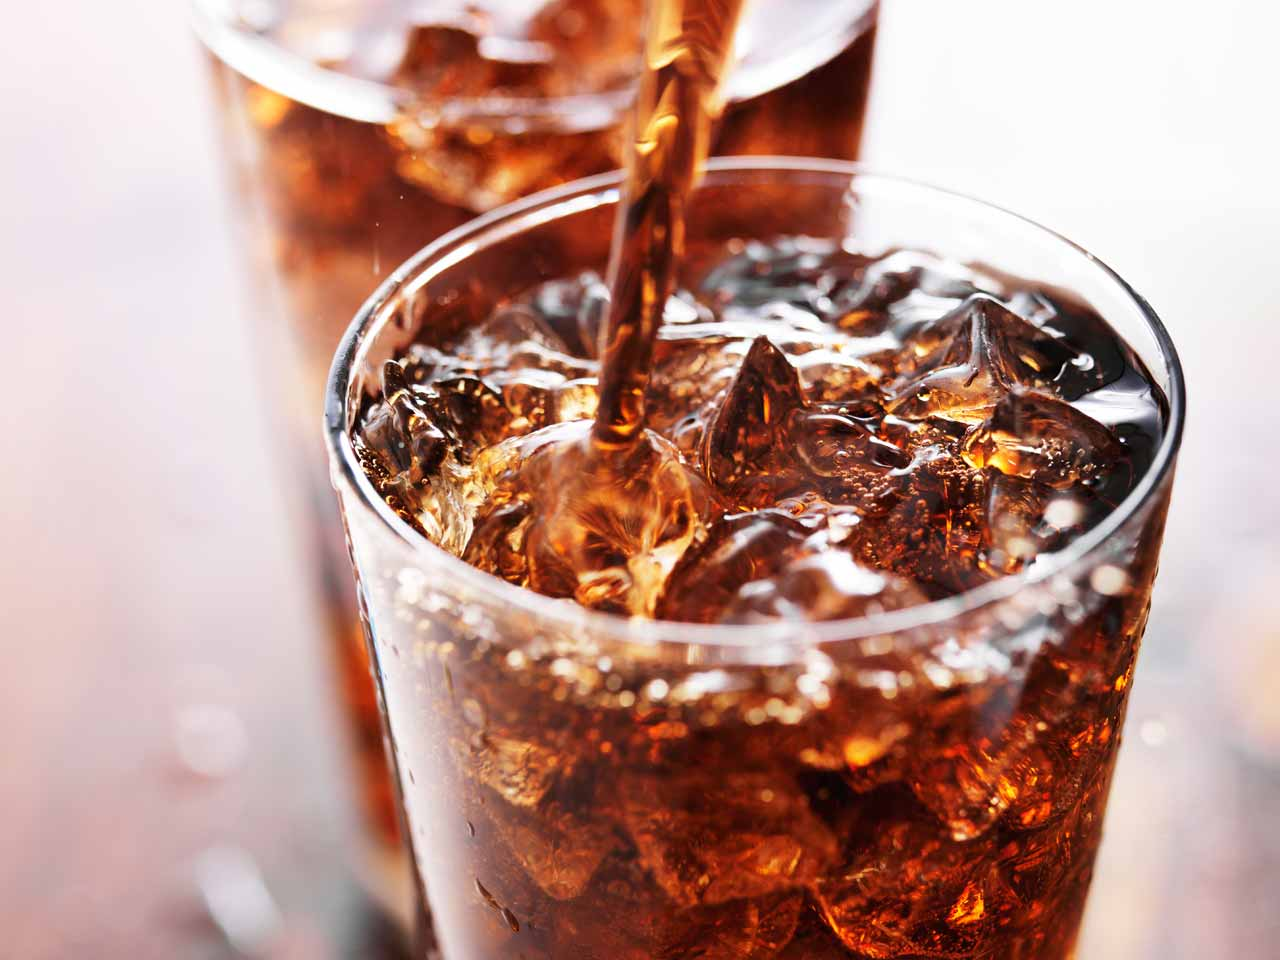 Are diet drinks really making people fat?